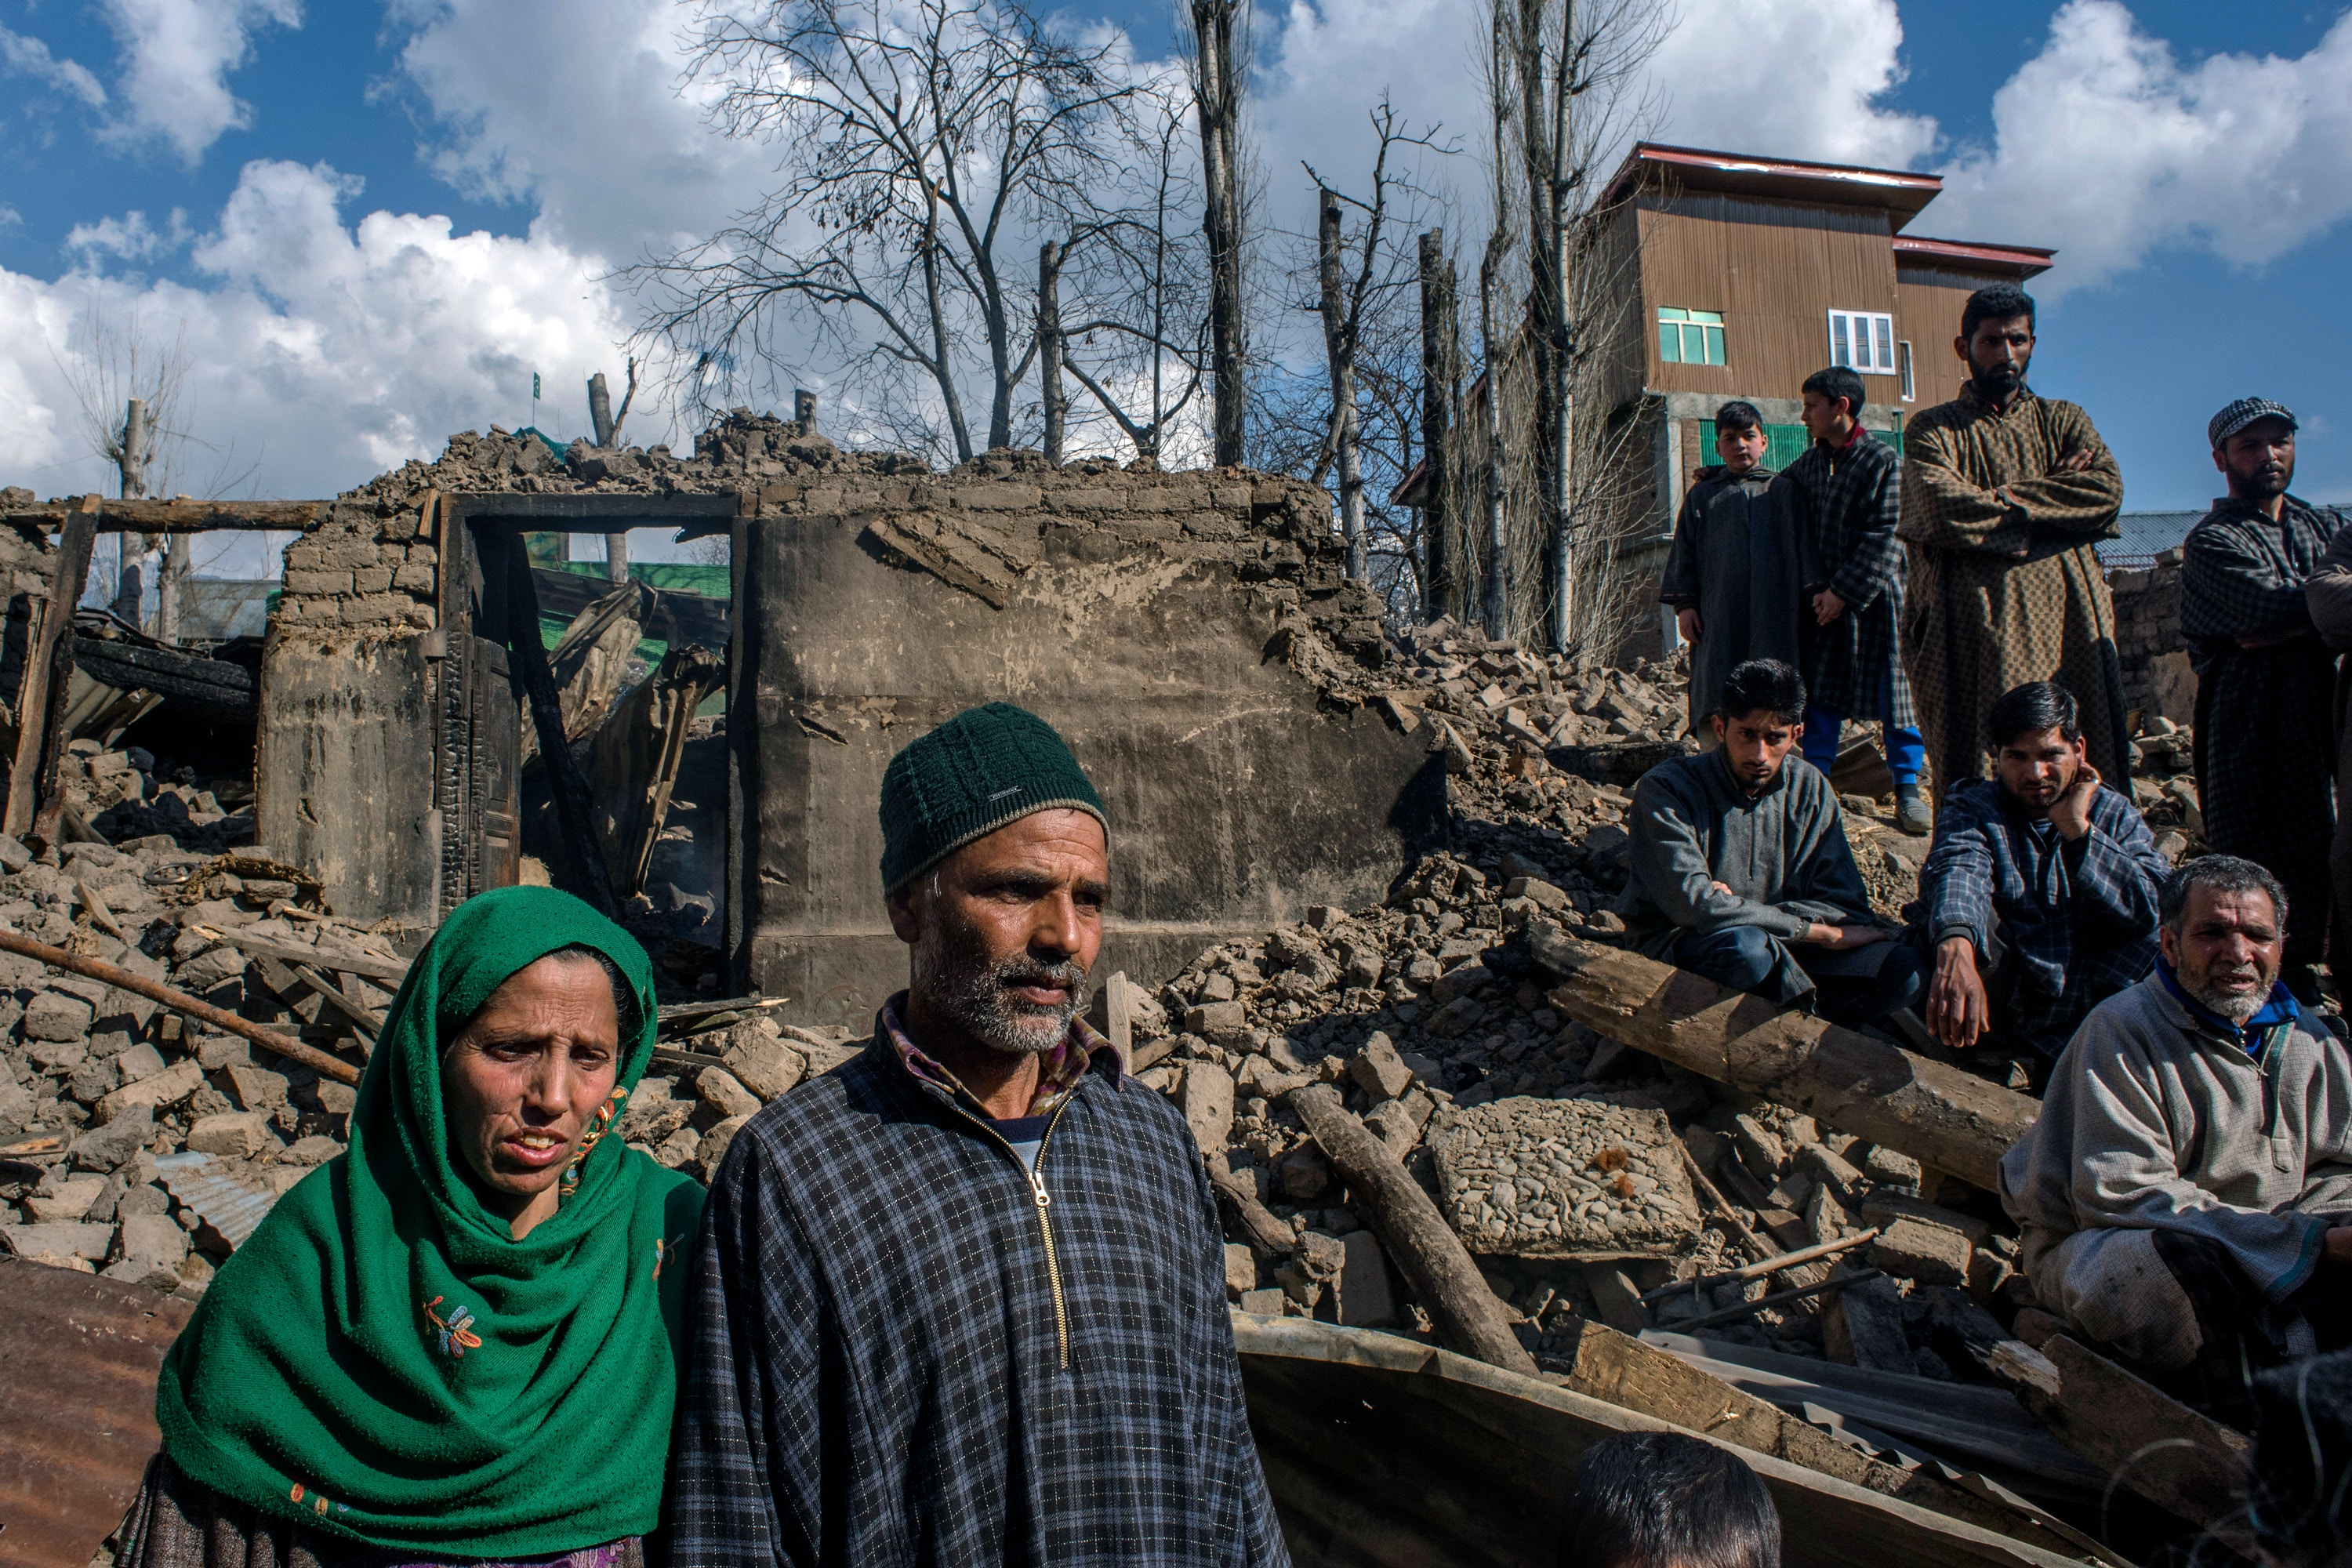 TRAL, KASHMIR, INDIA - MARCH 6: Saleema Begum and her husband Ghulam Qadir Naikoo, stand in front the rubble of their residential house, which was destroyed in a gun battle between Indian government forces and local rebels on March 6, 2019 in Tral, south of Srinagar, the summer capital of Indian administered Kashmir, India. Two Kashmiri rebels were killed yesterday, and a residential house destroyed in a gun battle with Indian government forces  and rebels. Indian government forces continued their operation against militants fighting against Indian rule and for the independence of Kashmir from Indian, in the wake of the February 14 suicide attack that killed over 40 Indian paramilitary troopers. Two rebels of Hizbul Mujahideen outfit were killed in a gun battle yesterday with Indian forces in South Kashmirs Pulwama district. Both militants were locals. Since the Pulwama attack, 15 militants have been killed in six separate gun fights in Indian administered Kashmir. Twelve Indian government forces personnel were killed during the operations, while two civilians also lost their lives.  (Photo by Yawar Nazir/Getty Images)